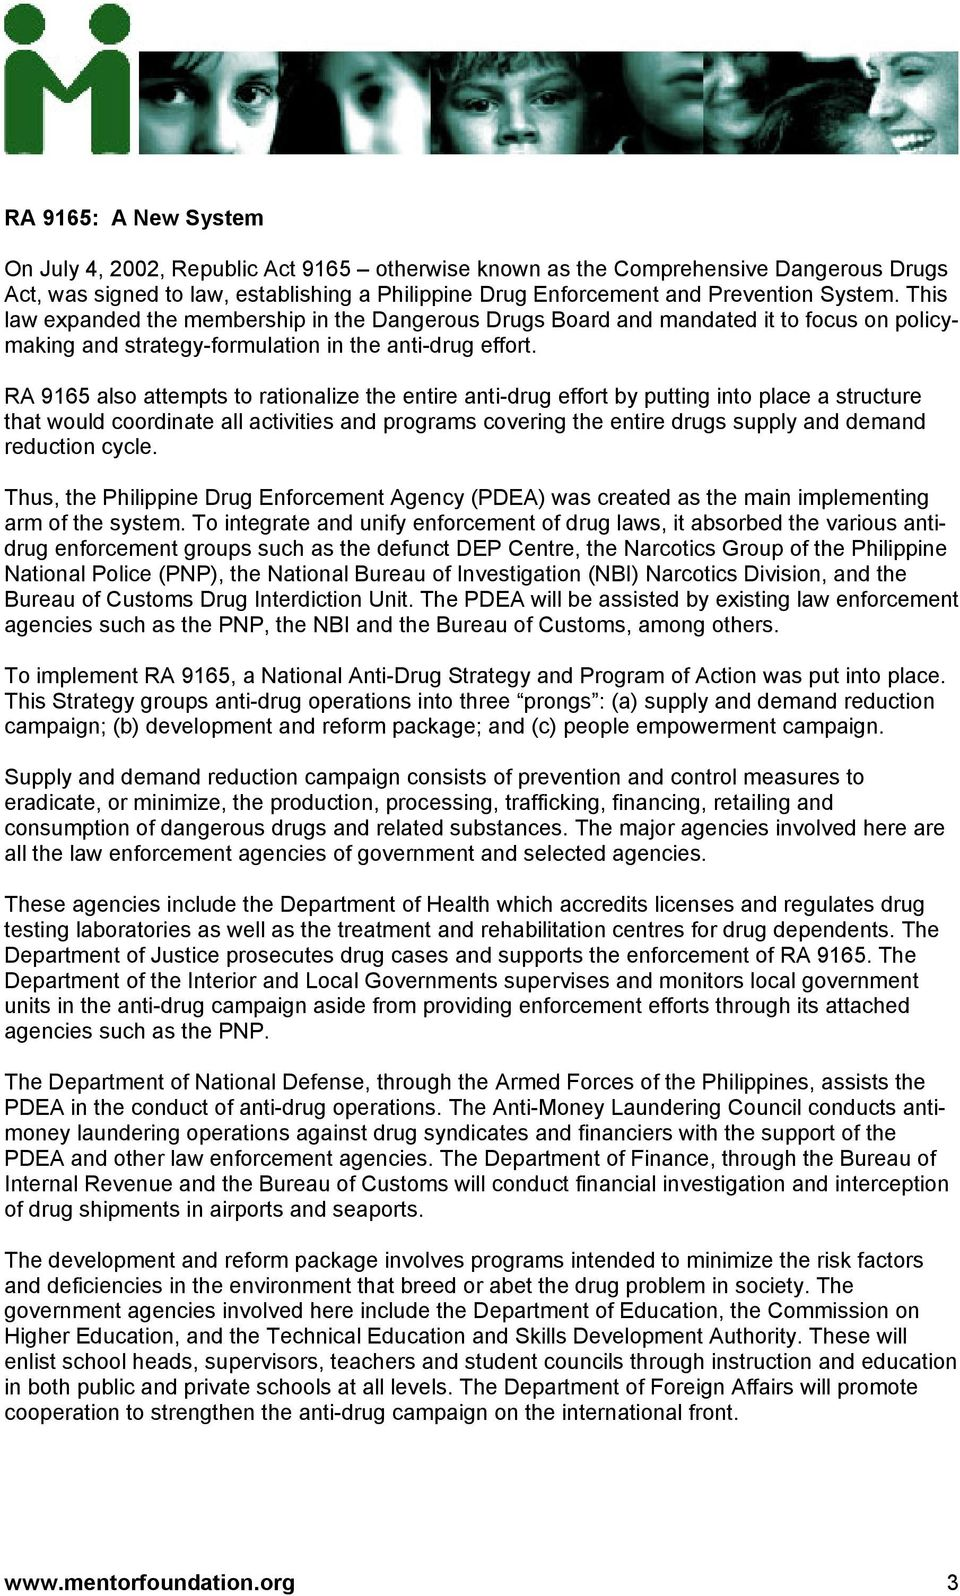 RA 9165 also attempts to rationalize the entire anti-drug effort by putting into place a structure that would coordinate all activities and programs covering the entire drugs supply and demand